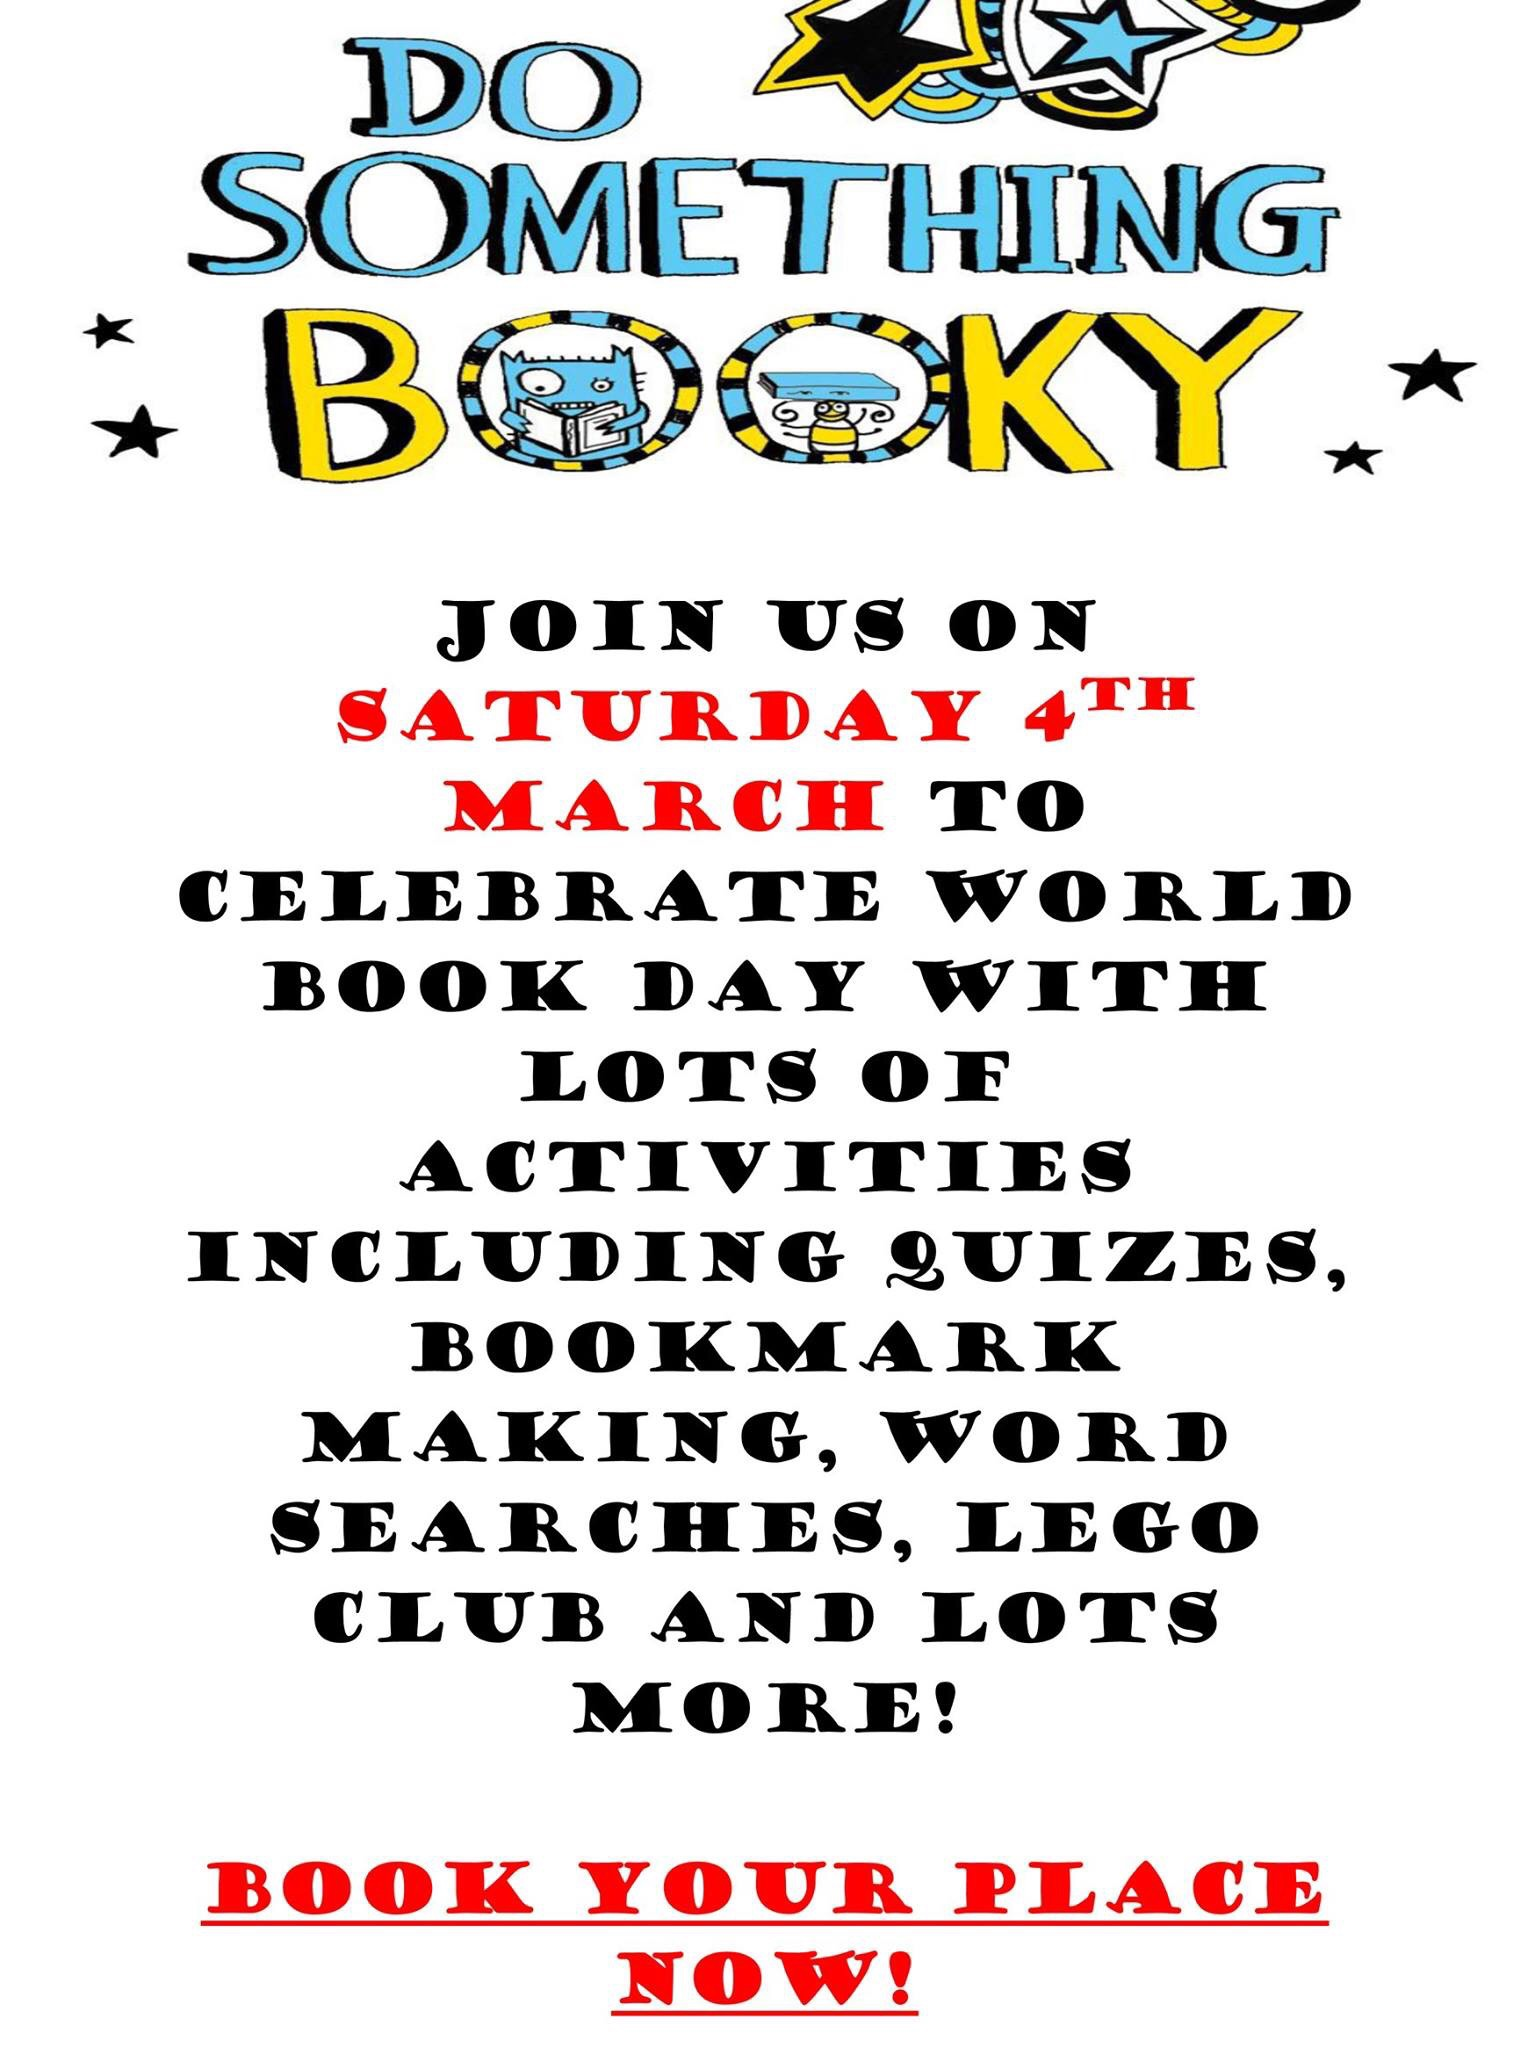 Role Local Libraries Have Played In Opening The World Of Books To Many  Generations The Poster Below Shows Events At Batley Library On Saturday 4  March